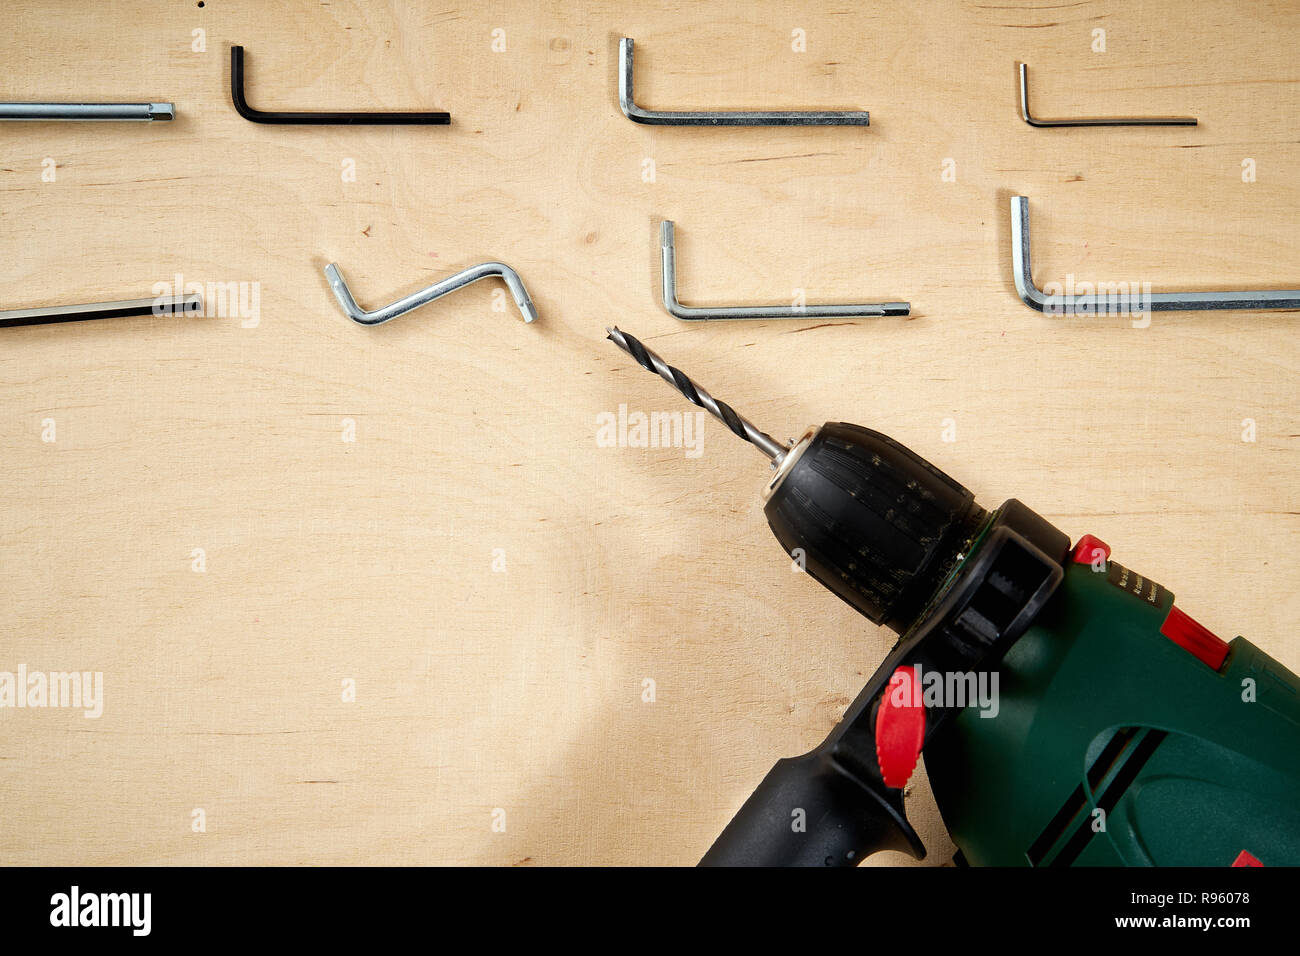 pattern background of various allen keys with drill on wooden work table - Stock Image